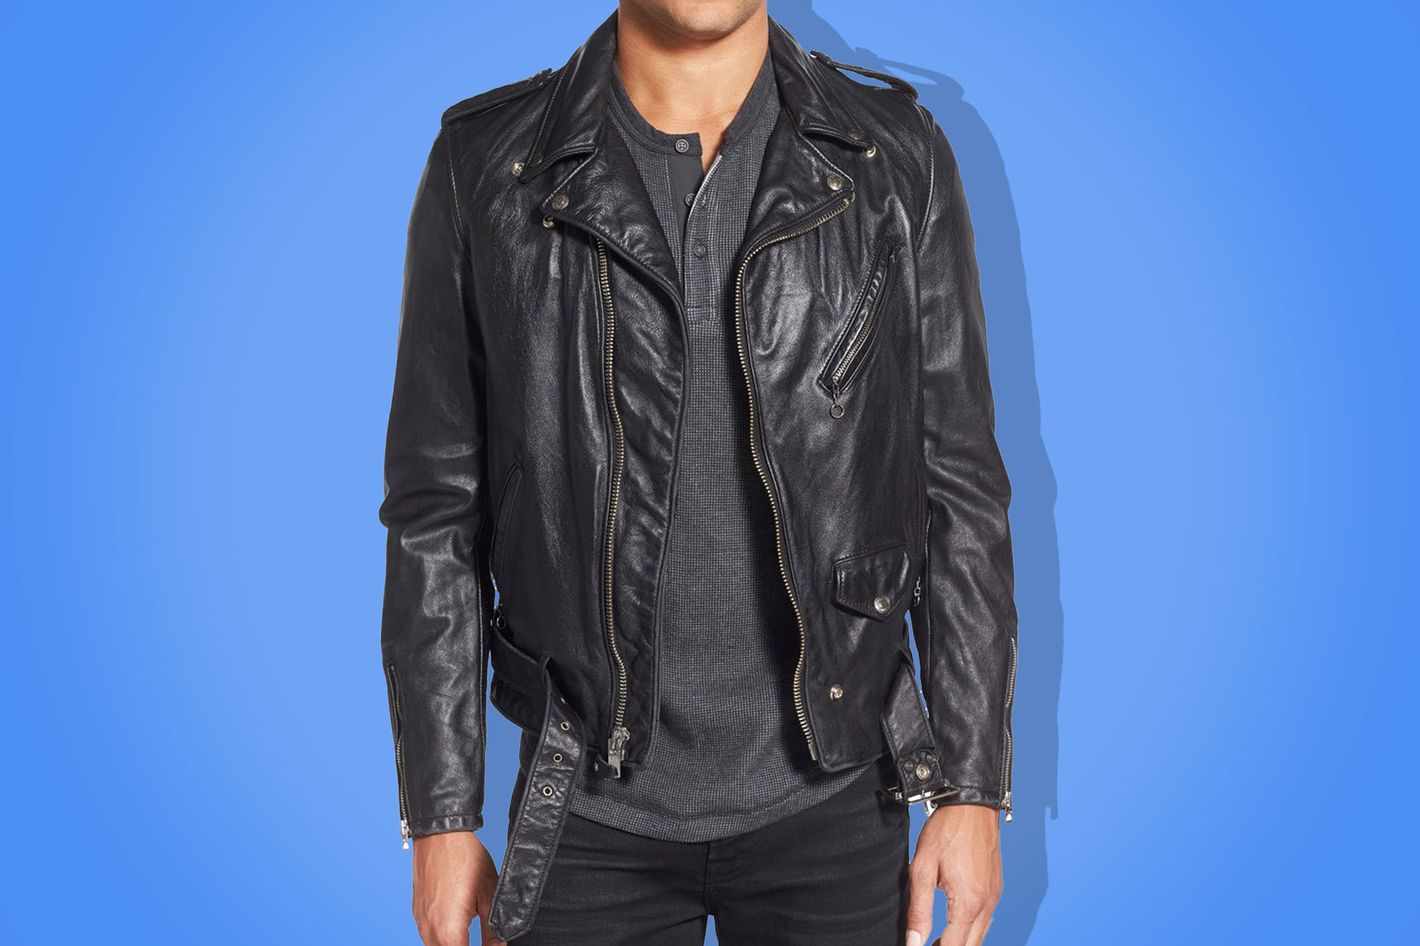 Best leather jacket for men is from Schott.